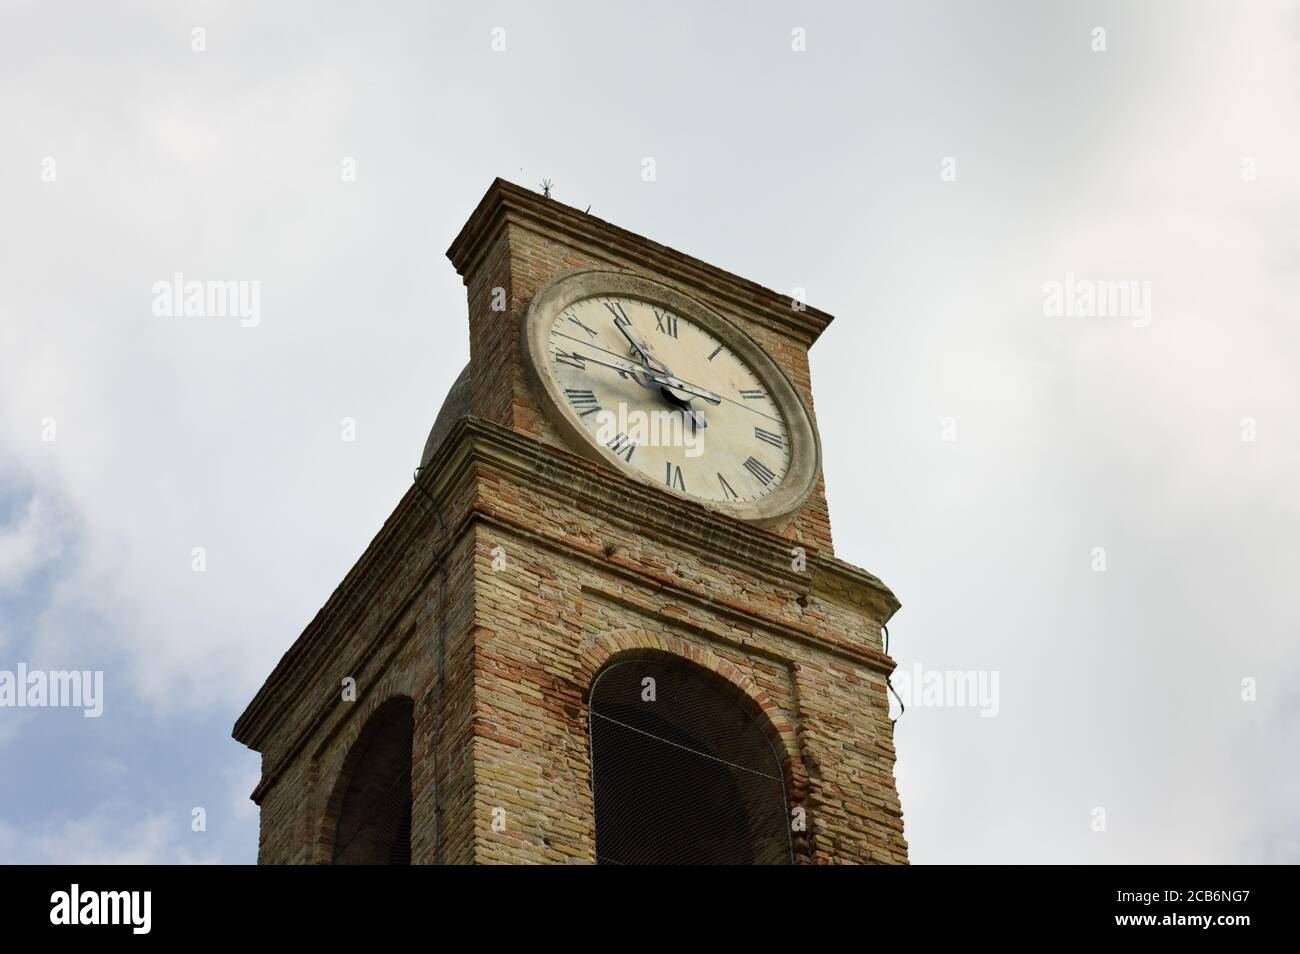 A medieval bell and clock tower of an ancient church (Pesaro, Italy, Europe) Stock Photo